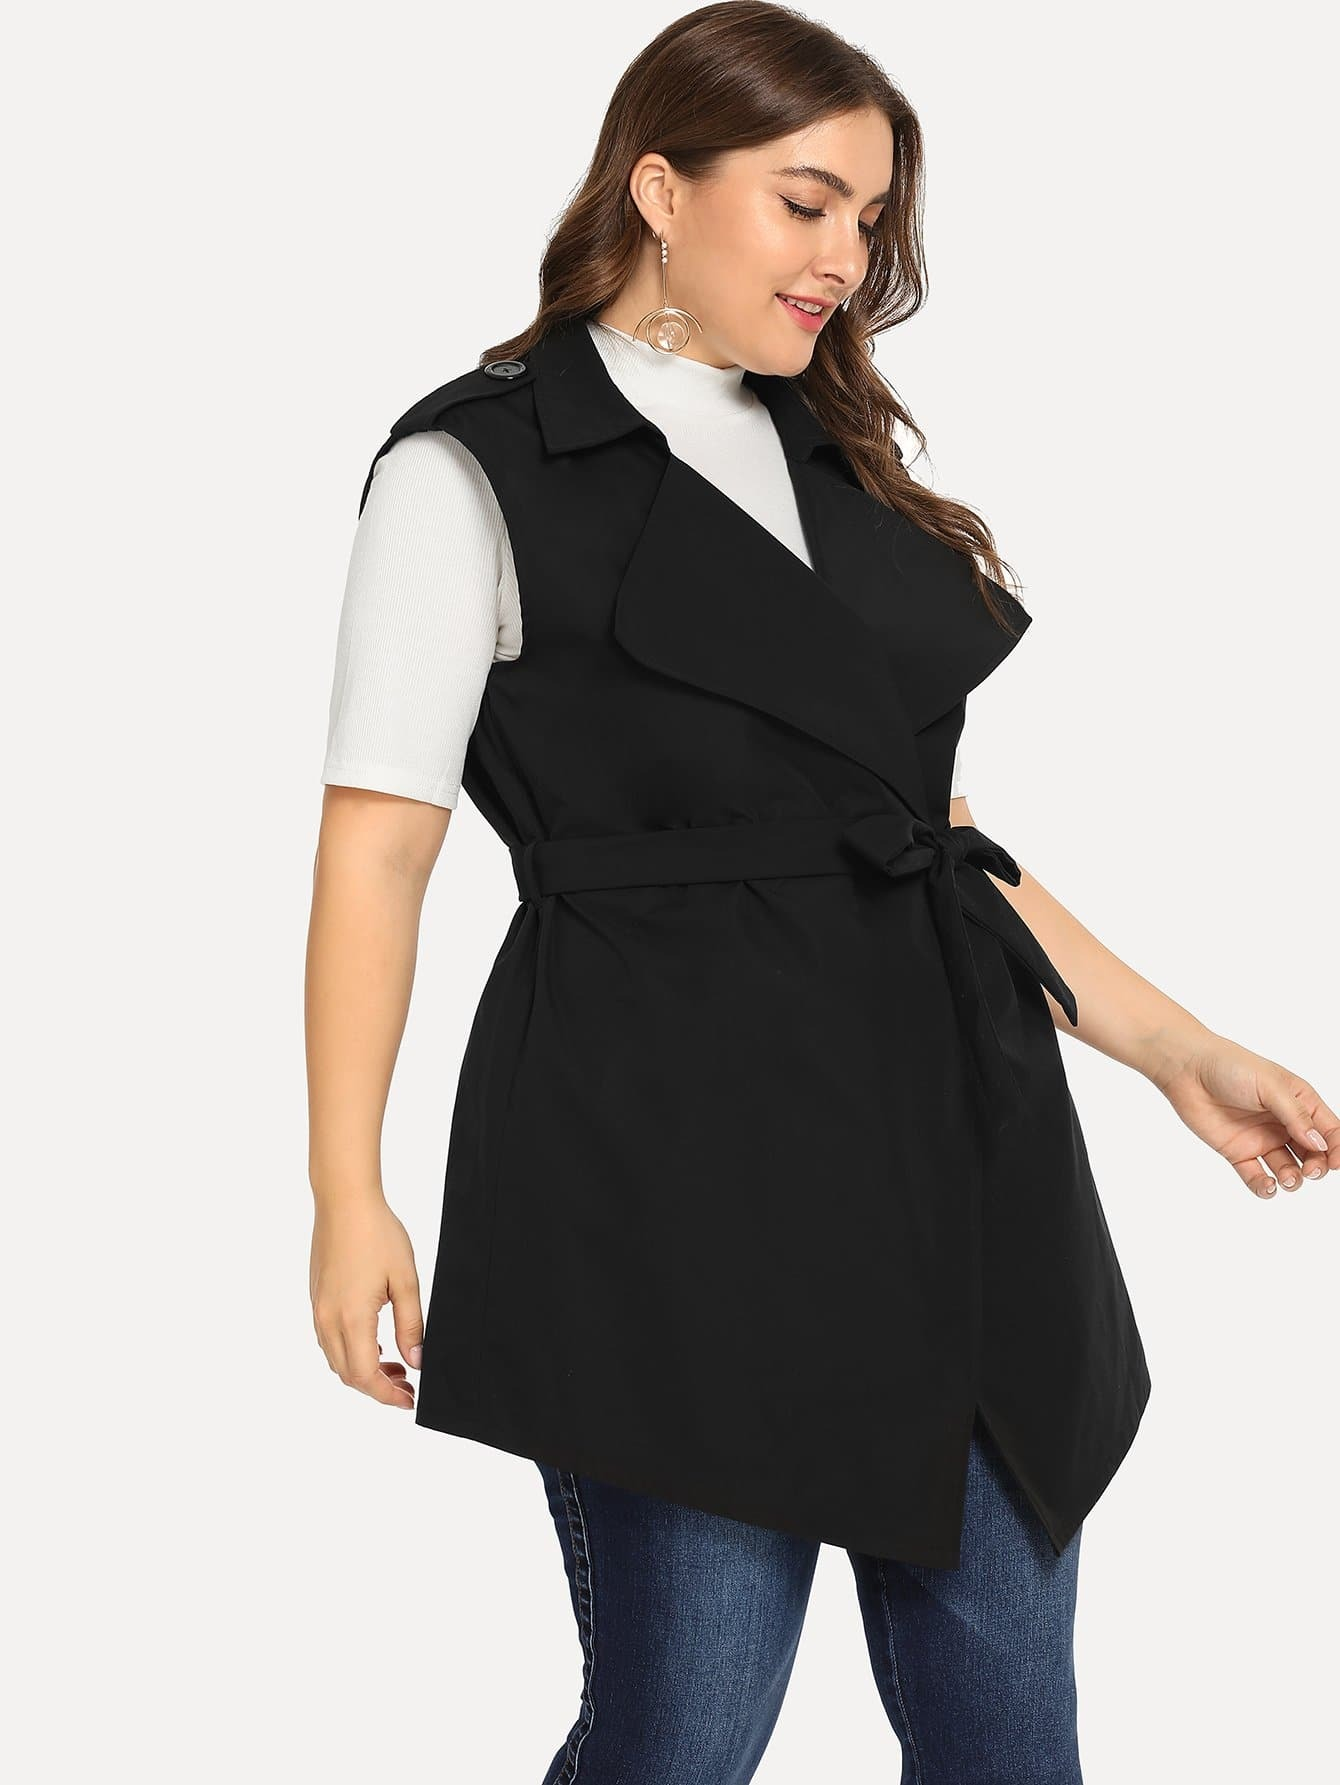 Plus Self Belted Sleeveless Coat mobil 600xp220 320 150 100 68 680 208l